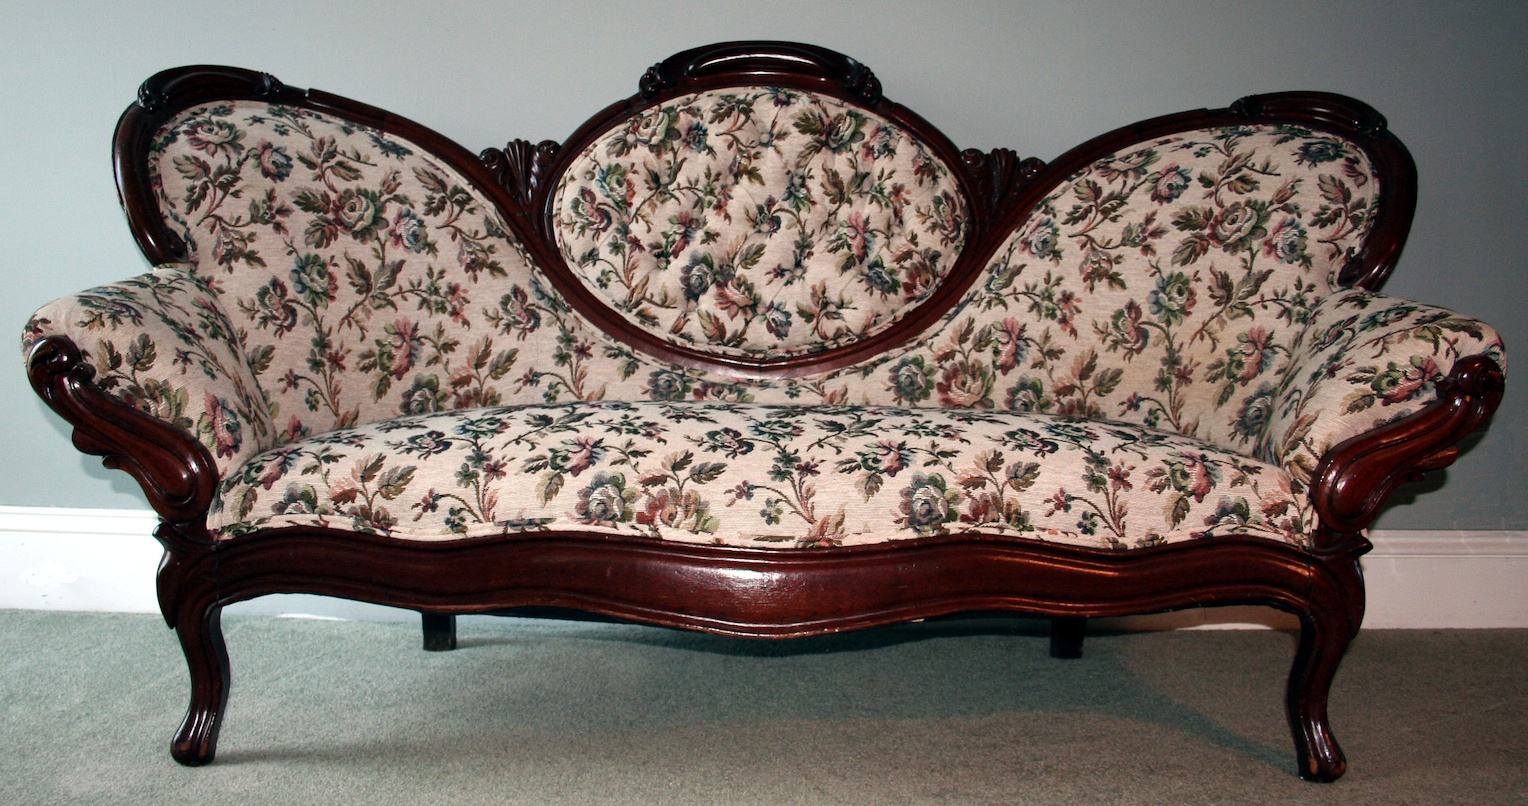 Is This Sofa And Chair Queen Anne Early 1900s Fro The Ebay